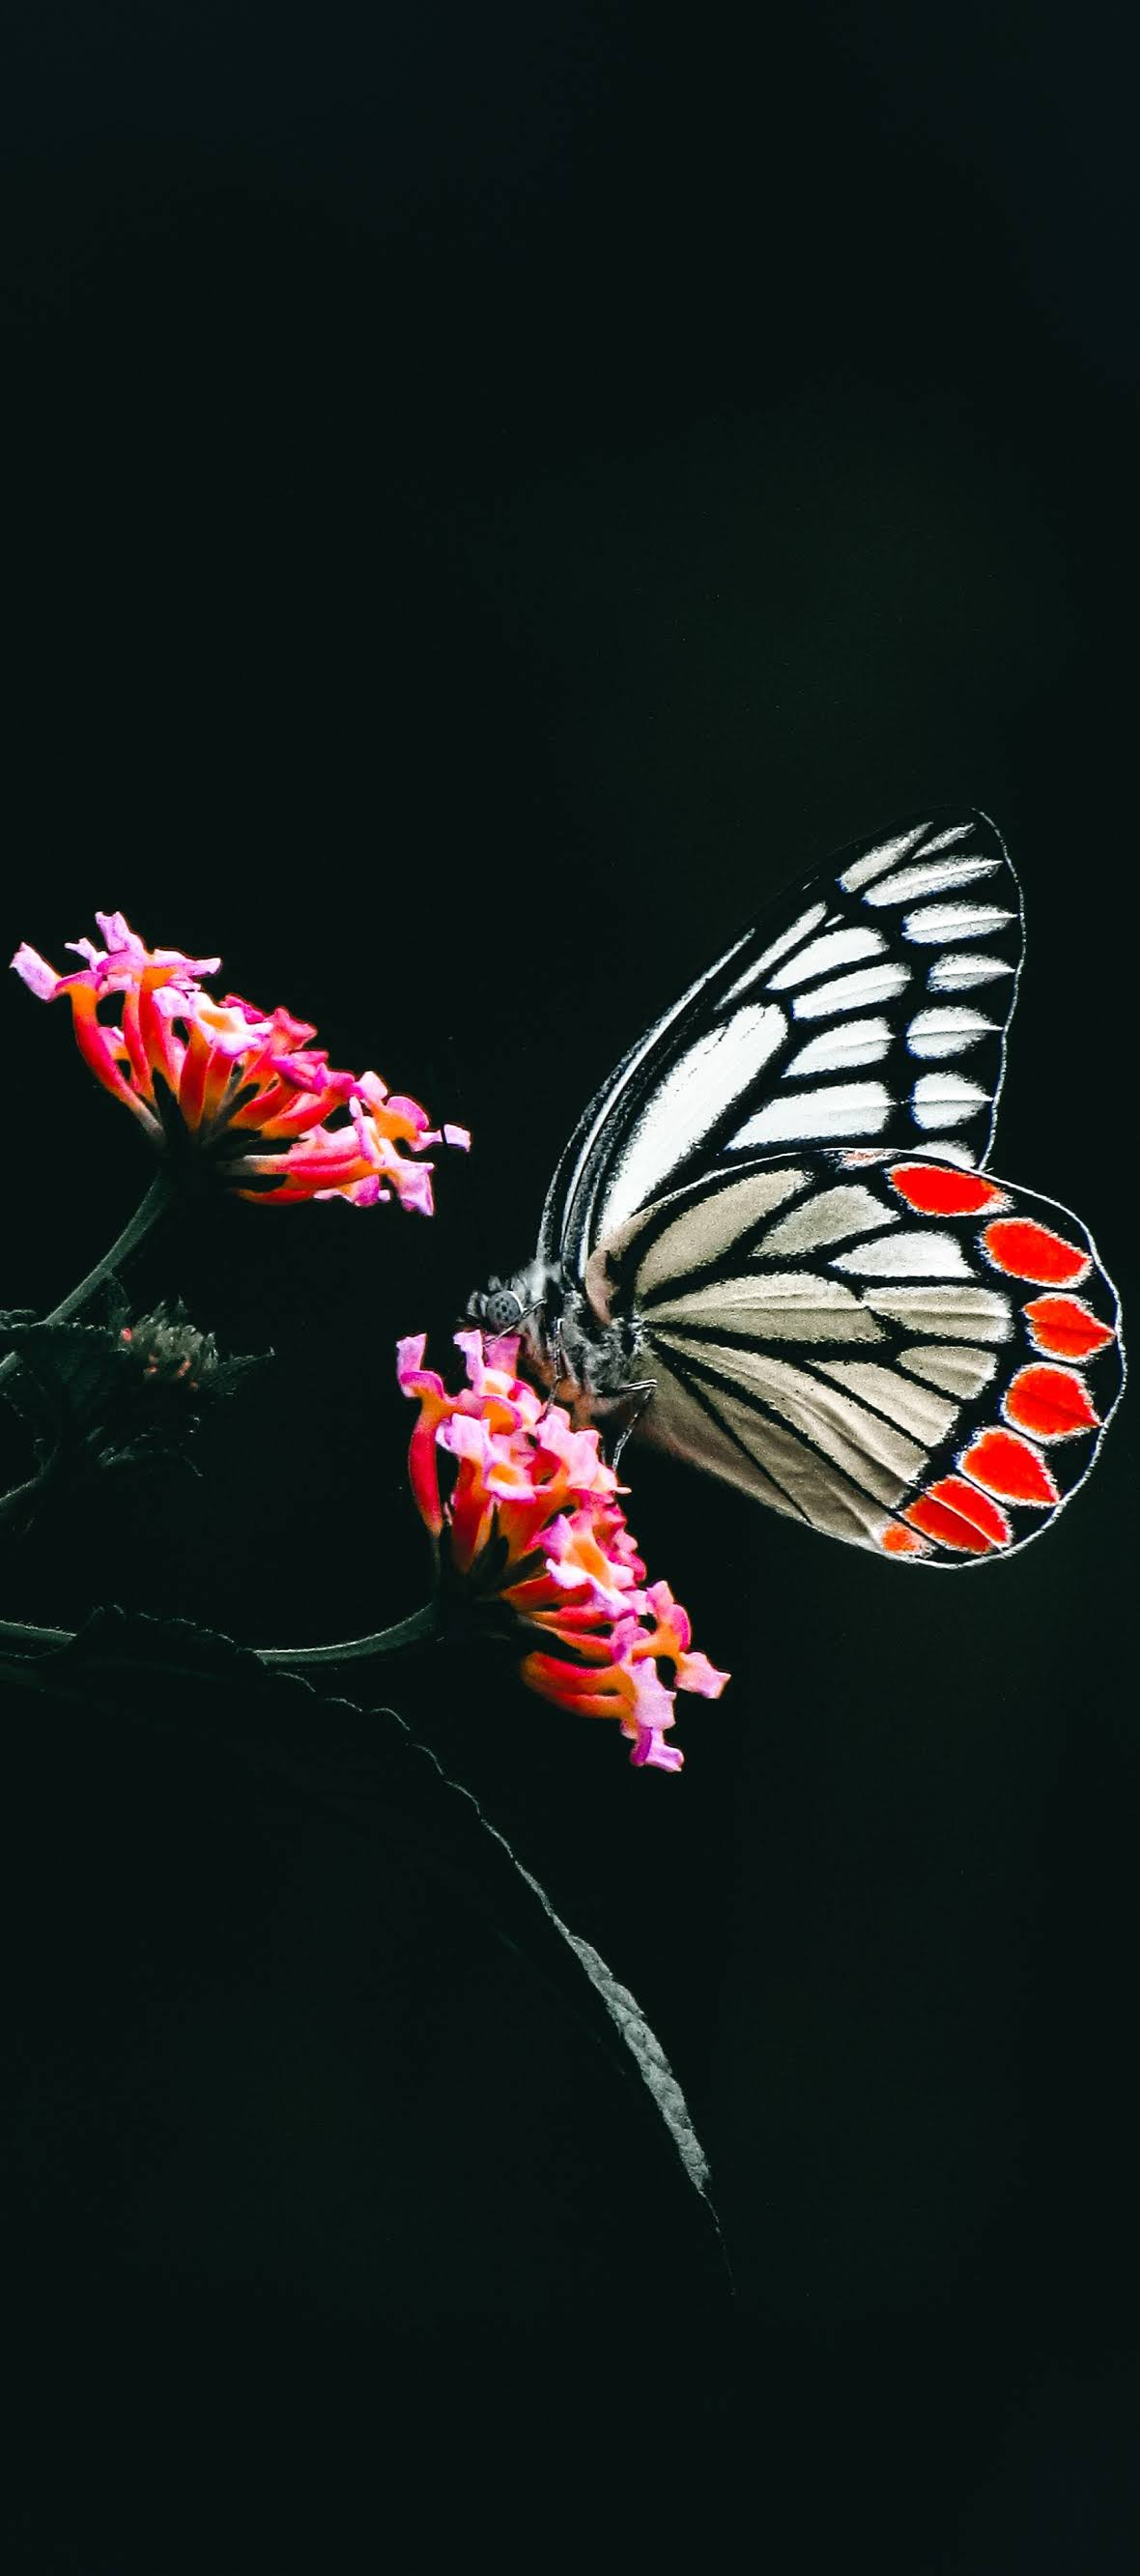 A butterfly pollinating a flower.